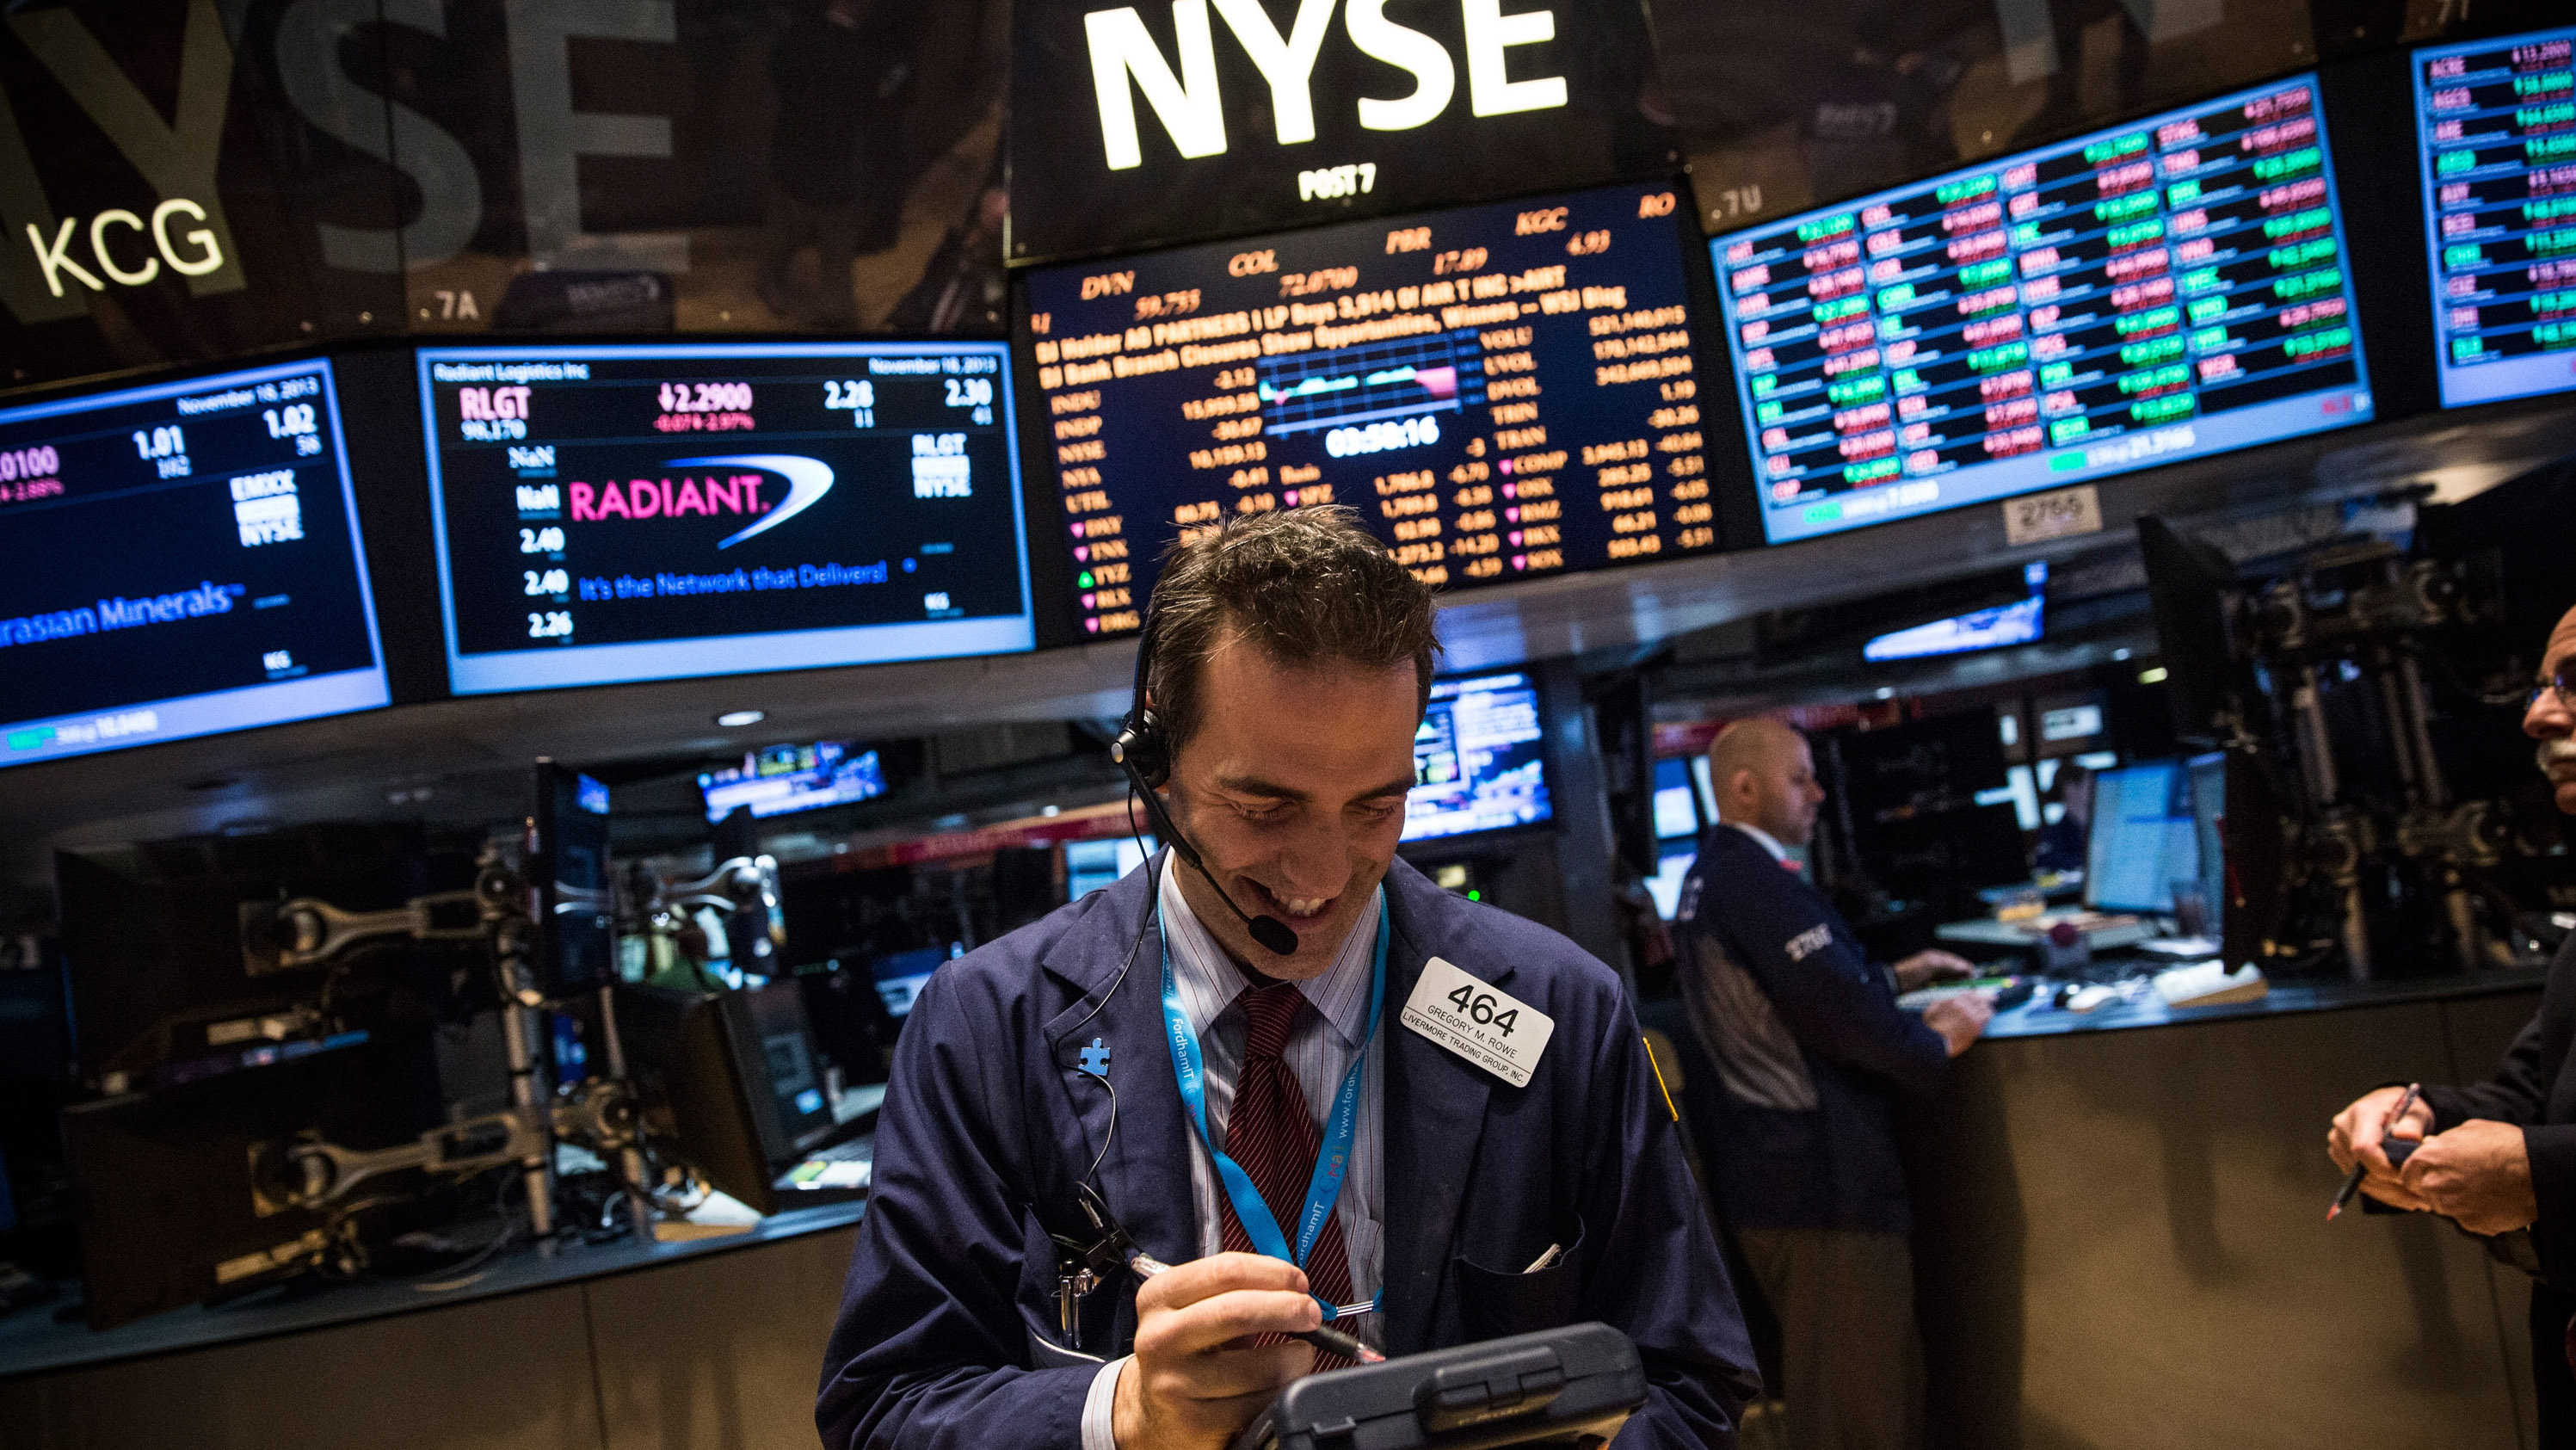 Dow Jones Index Closes Above 16,000 For First Time | NCPR News